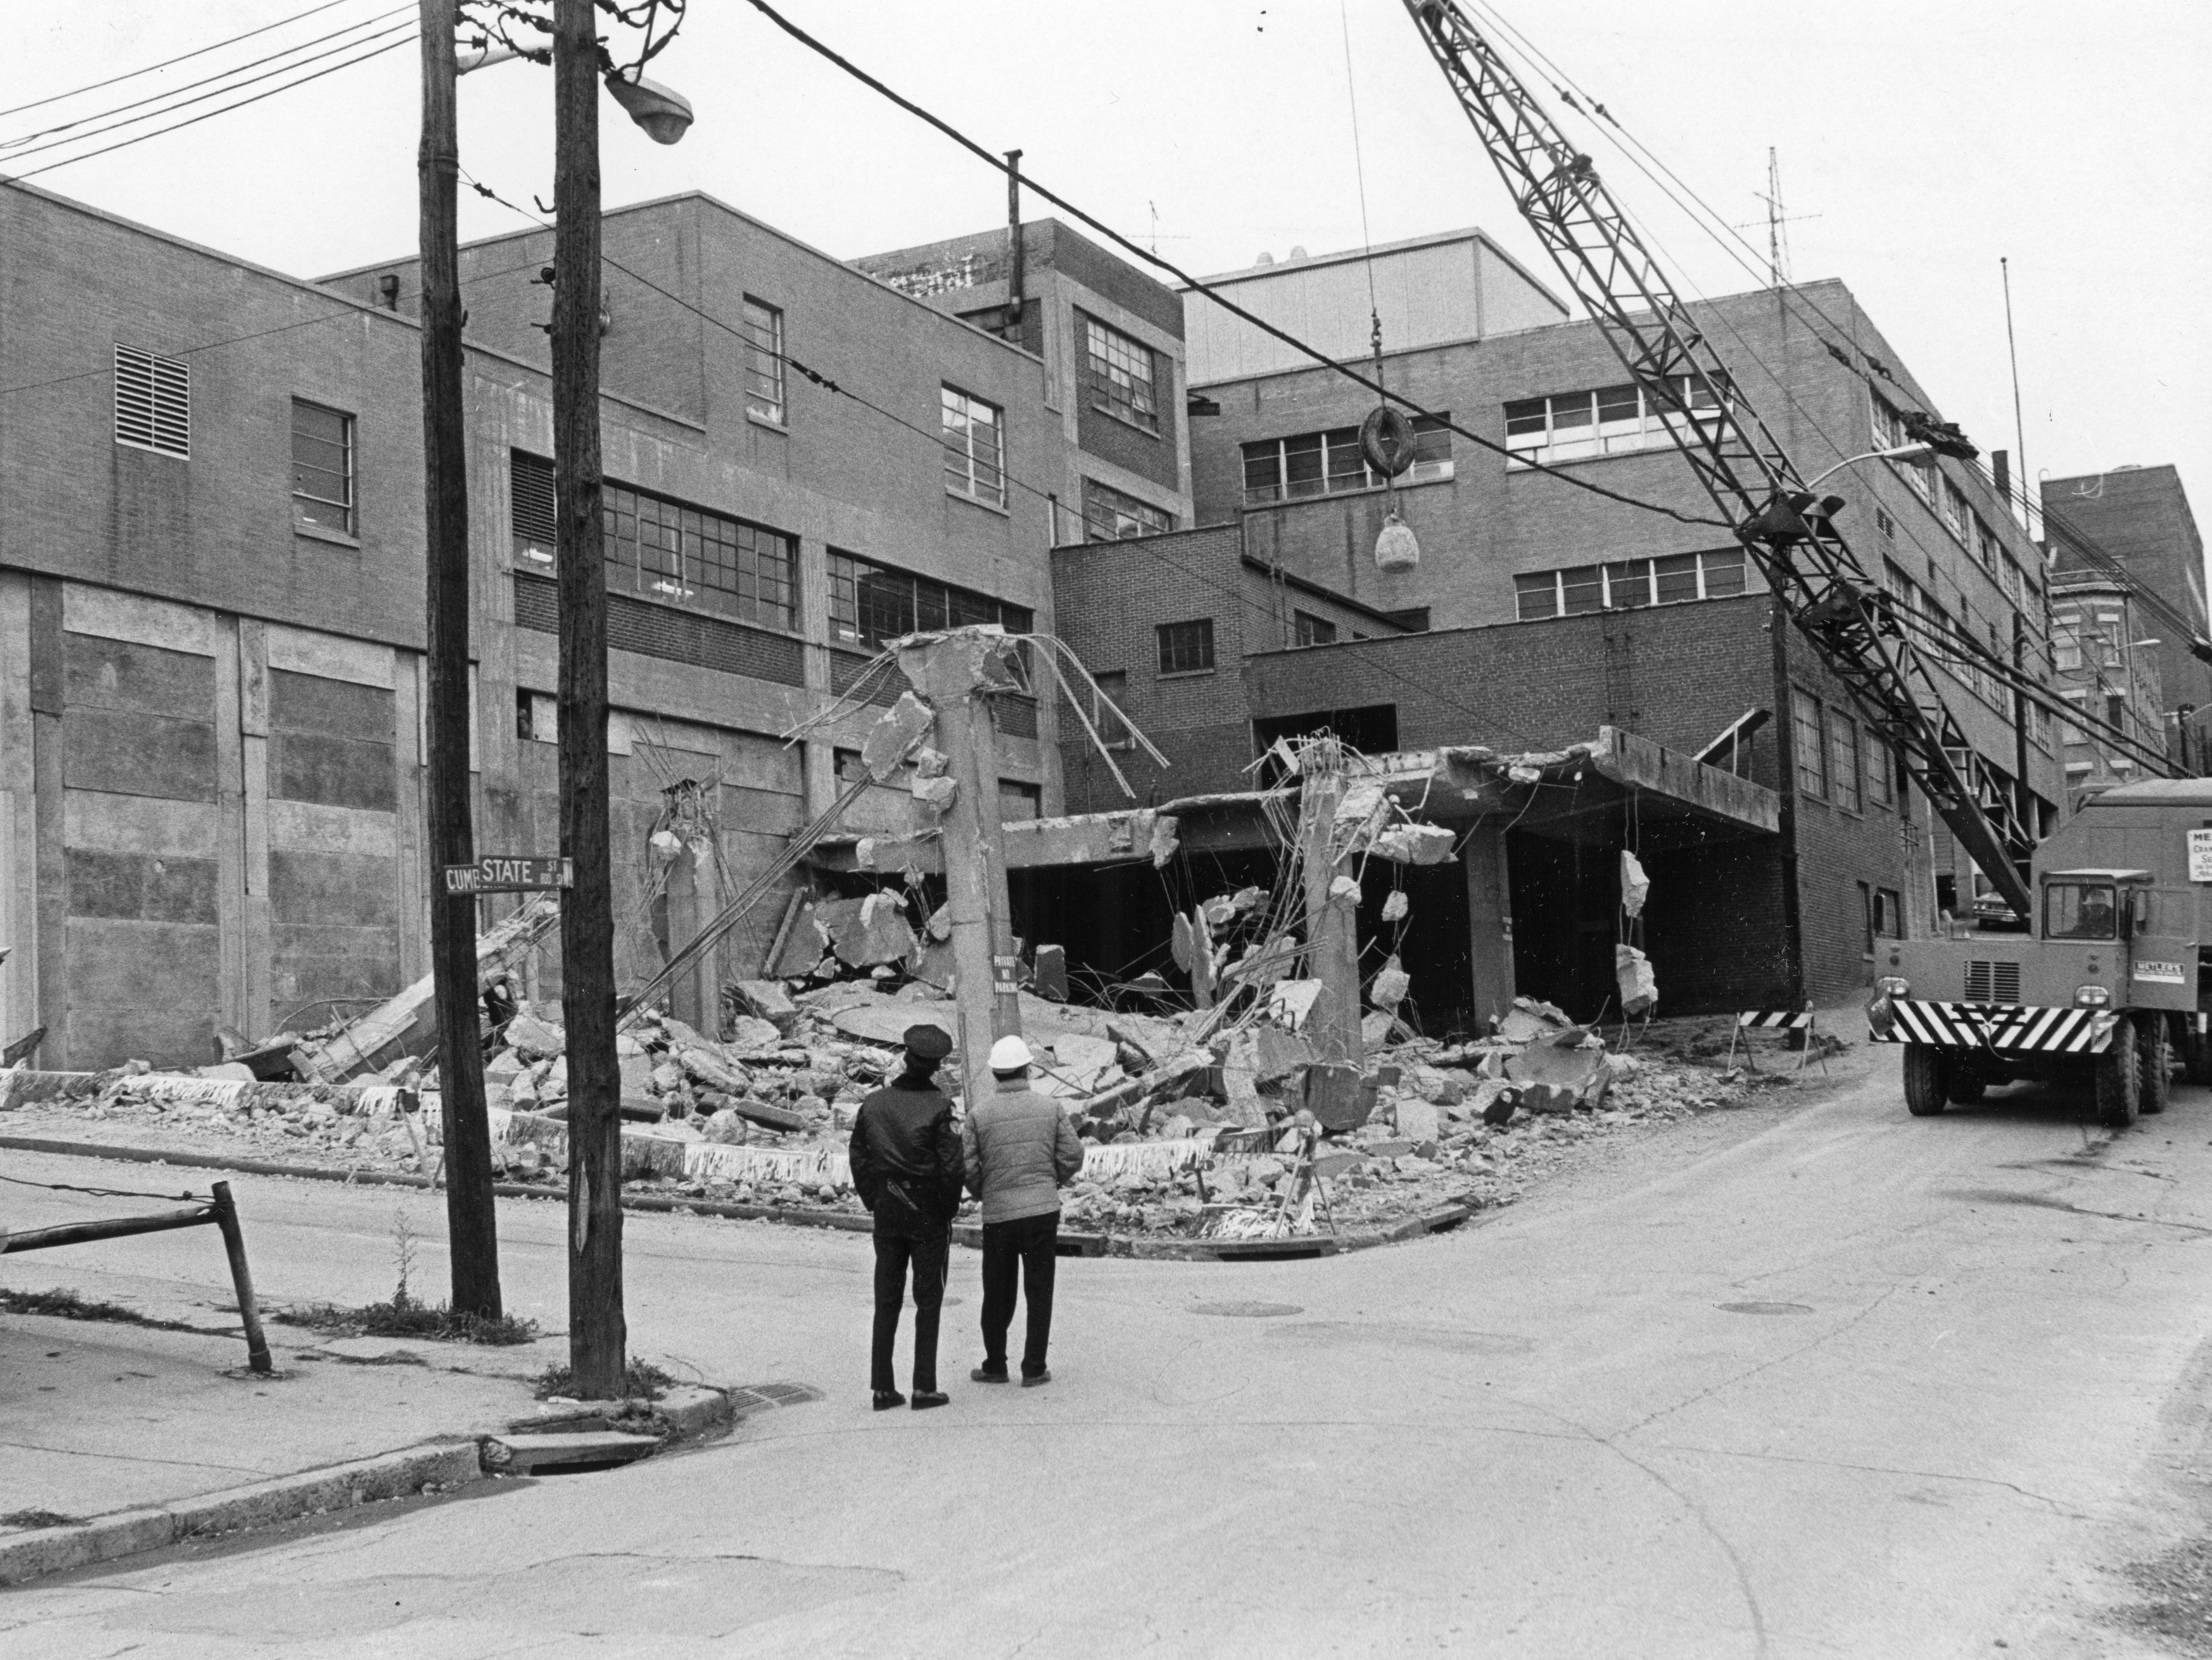 """""""Changing with the times"""" reads the headline of this December 10, 1972 photo of a section of the Knoxville News Sentinel Building being demolished."""